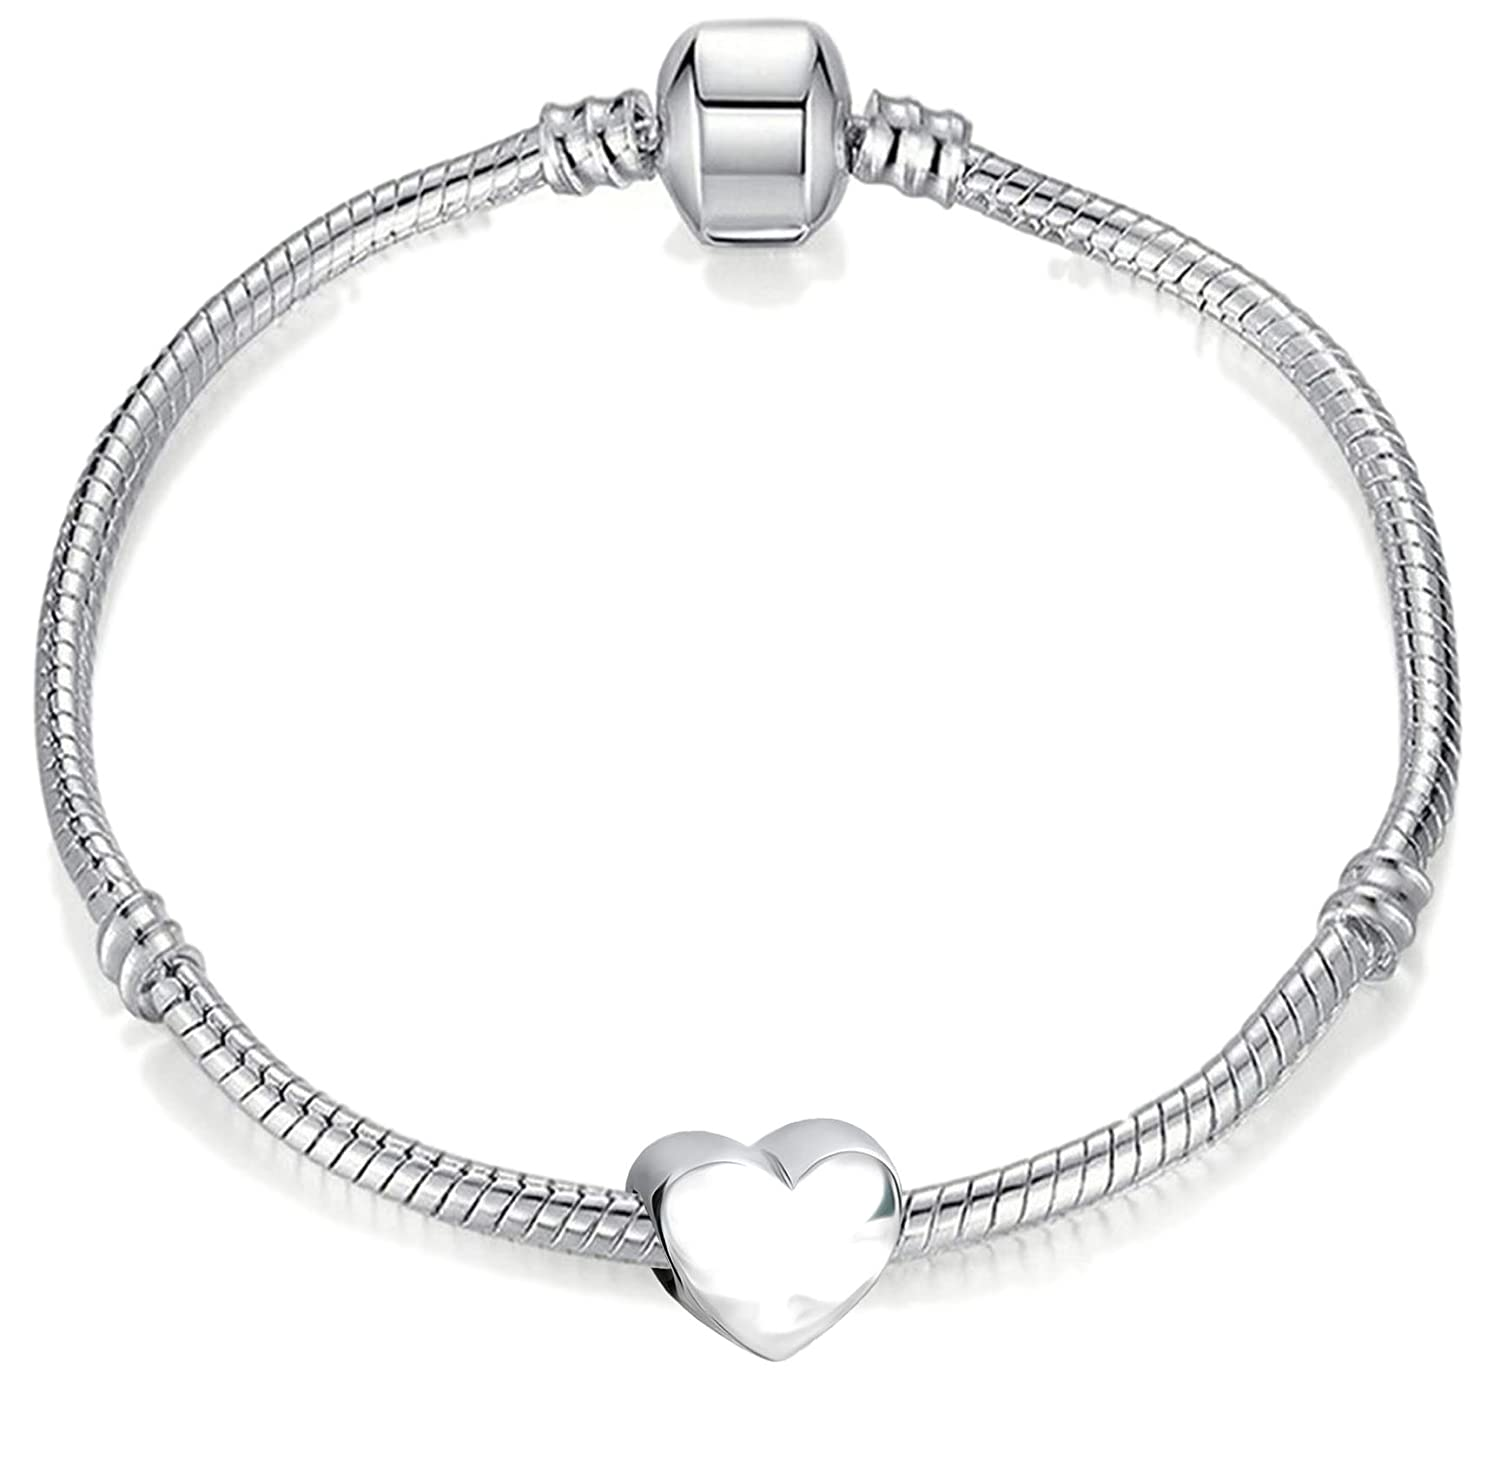 16cm Girls Starter Charm Bracelet with Silver Heart and Gift Box for Age 5-7 Years Charm Buddy Charm Buddy ® 16cm Bracelet with Gift Box/.